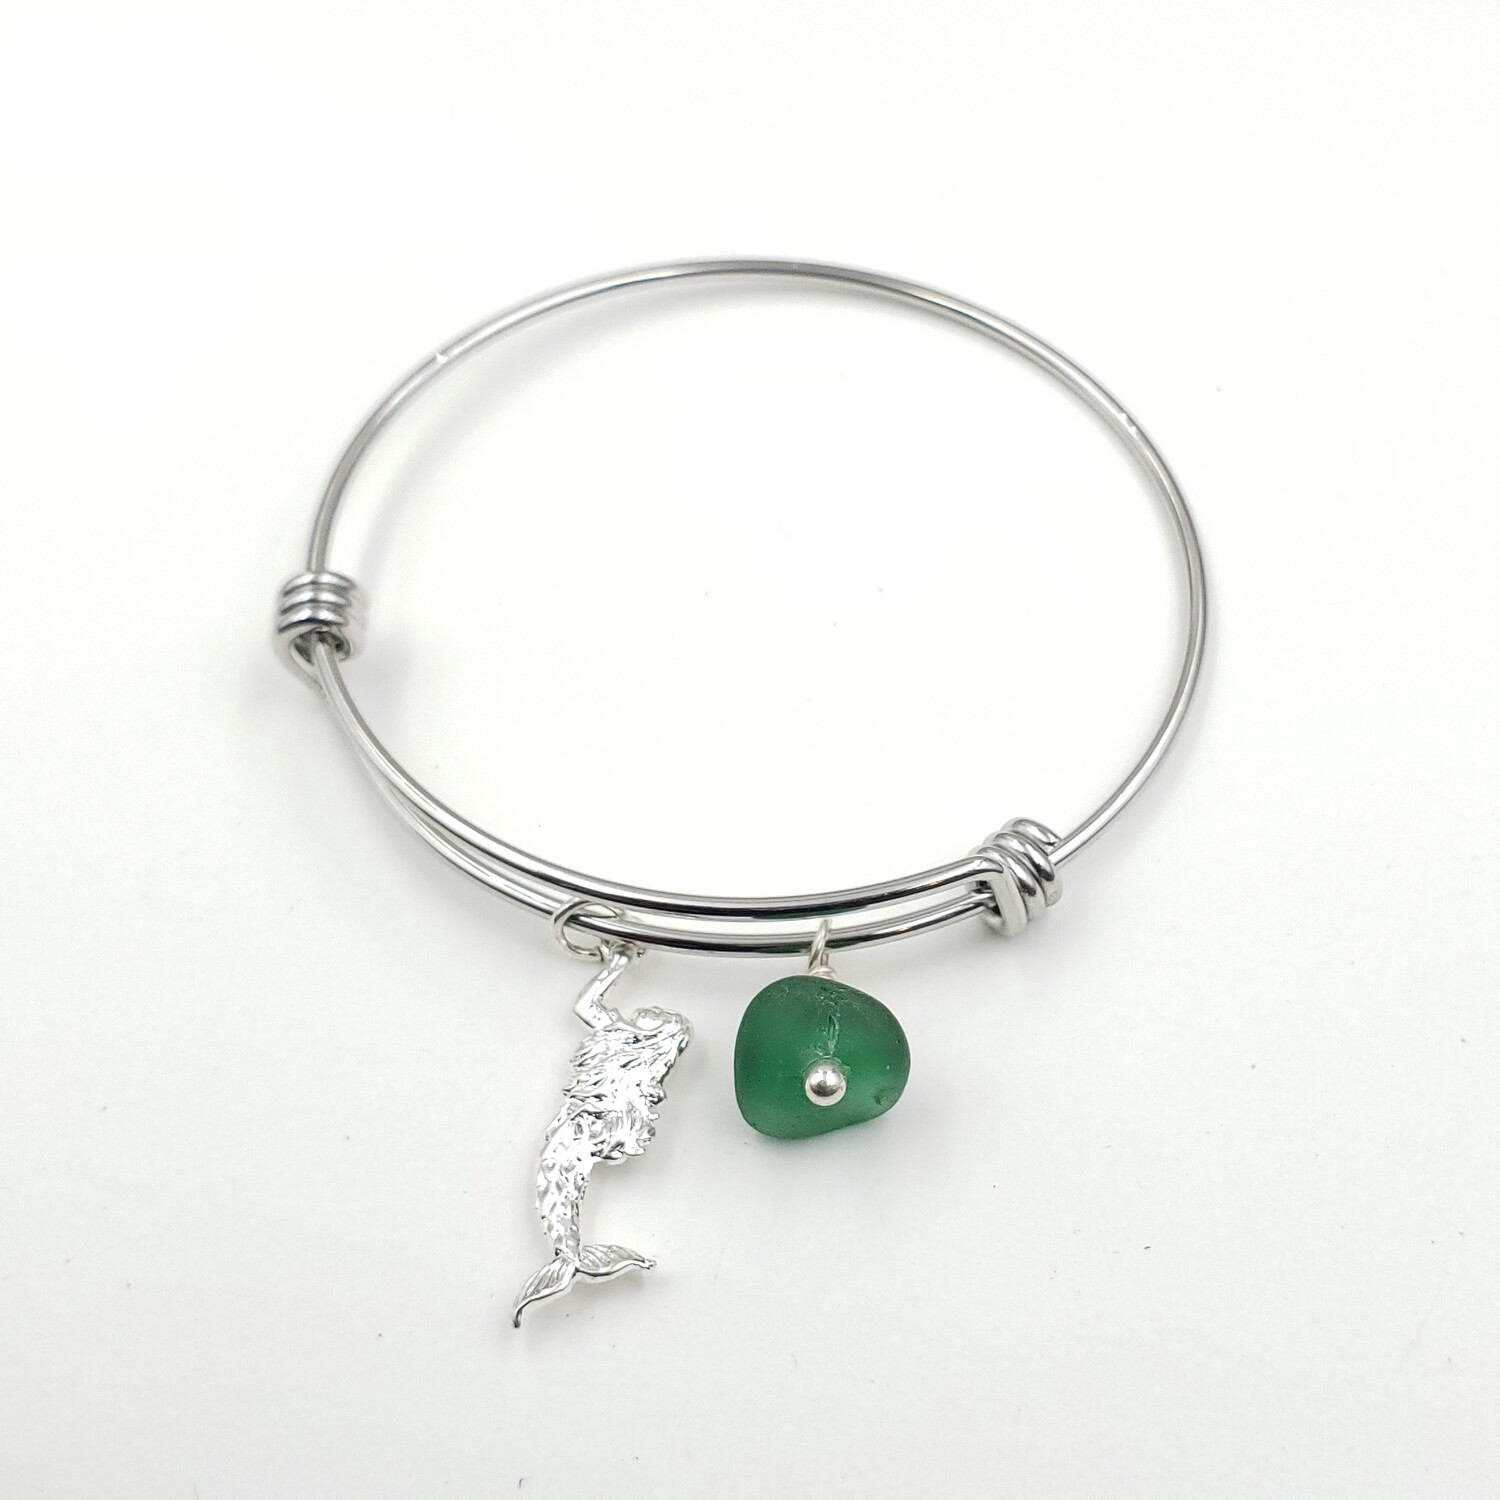 Bangle Bracelet with Mermaid Charm and Dark Green Lake Erie Beach Glass